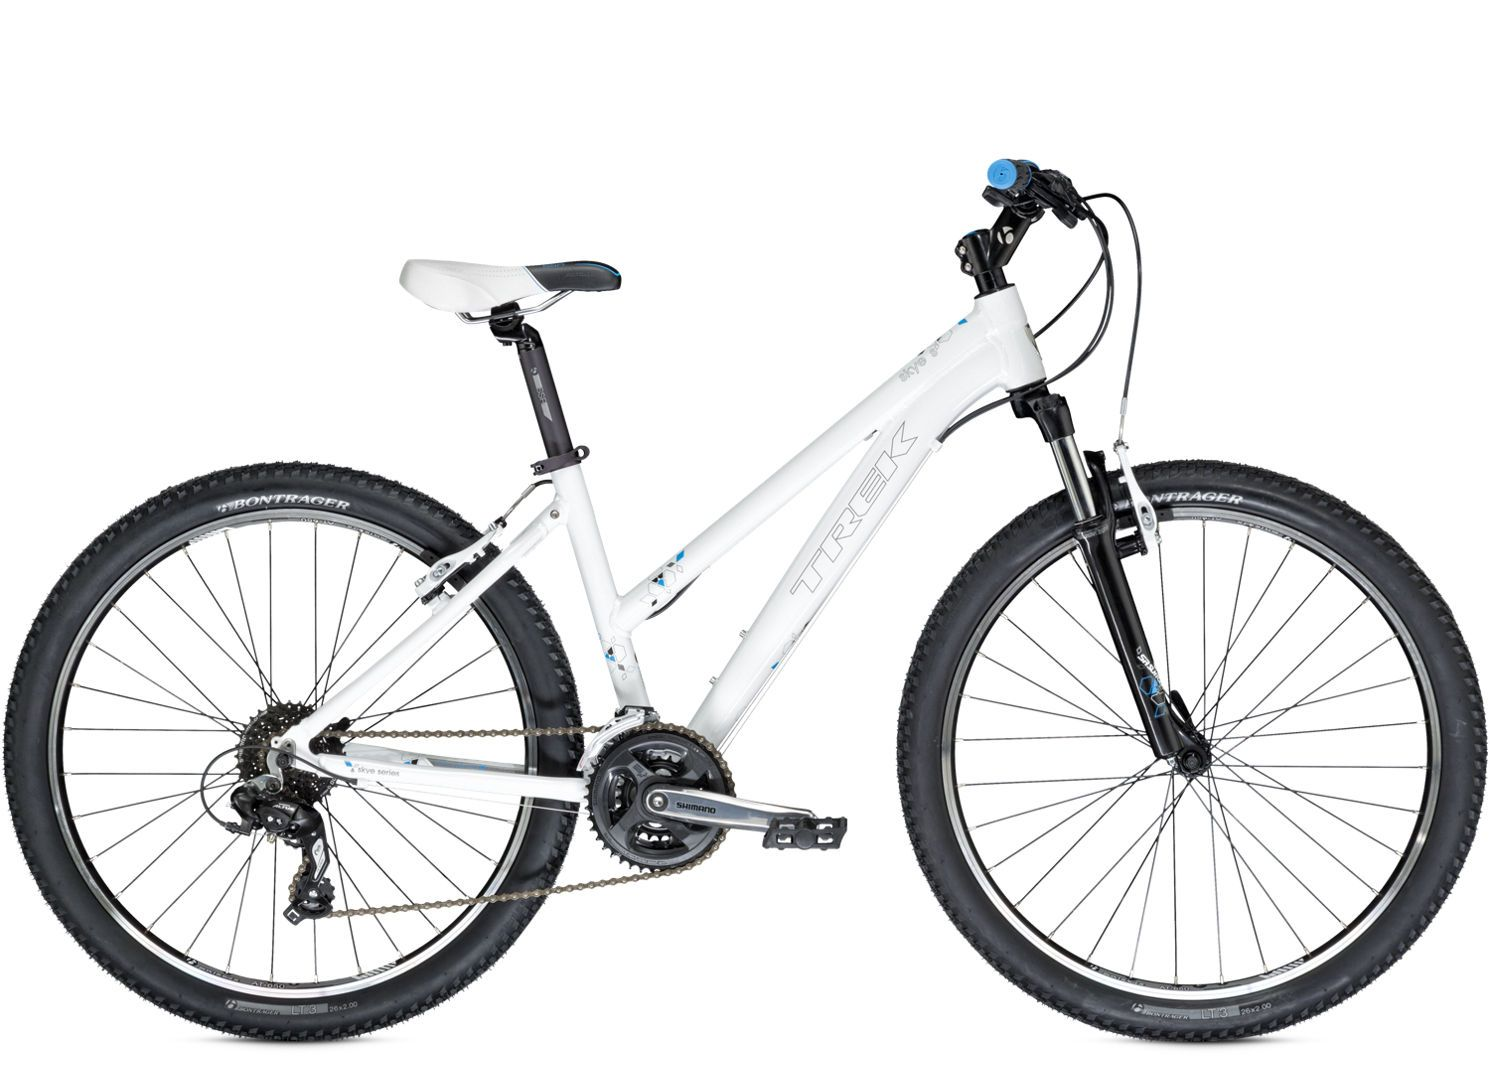 Sport Skye S Skye Is A Fun Versatile Mountain Bike For Women